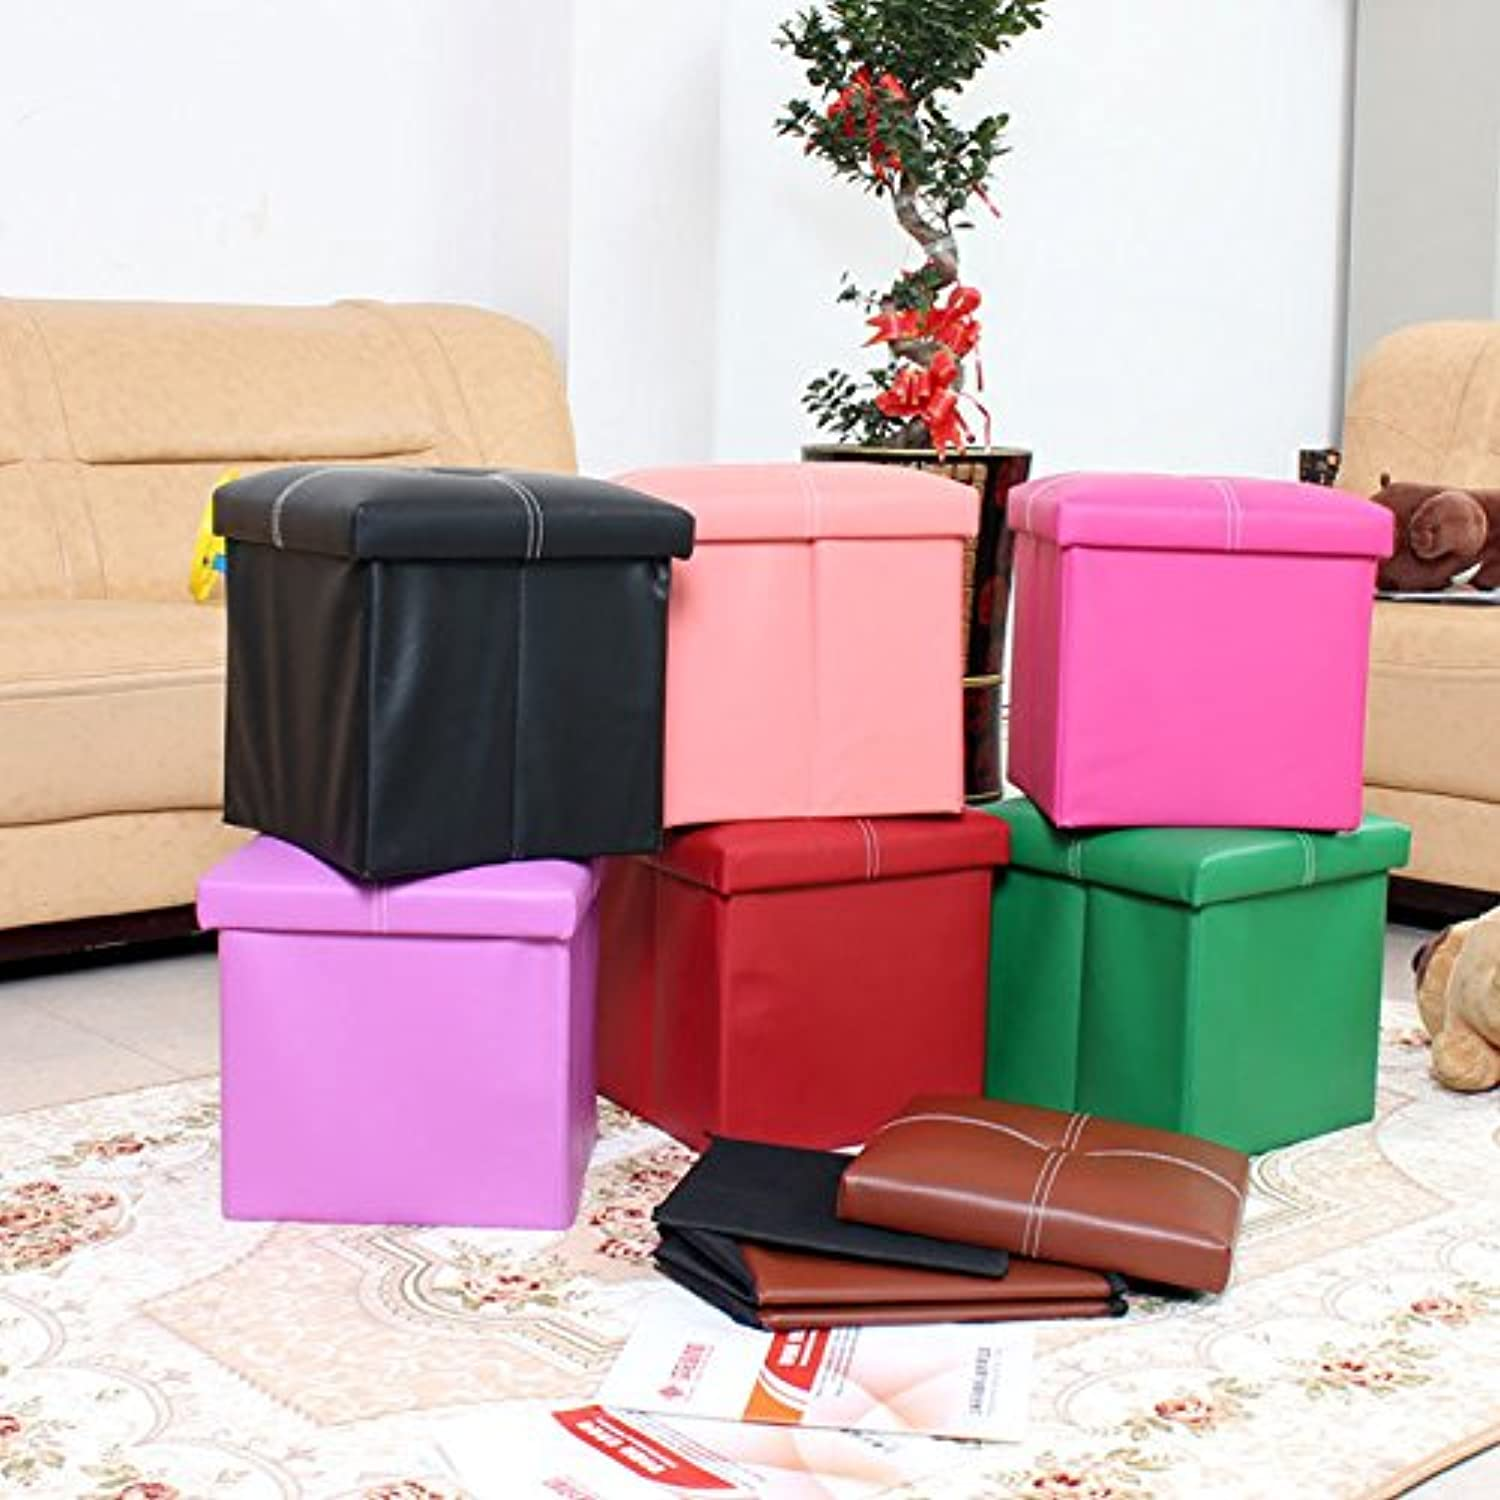 Bazaar Multifunctional Folding Storage Chair Box shoes Toys Storage Chair Home Furniture